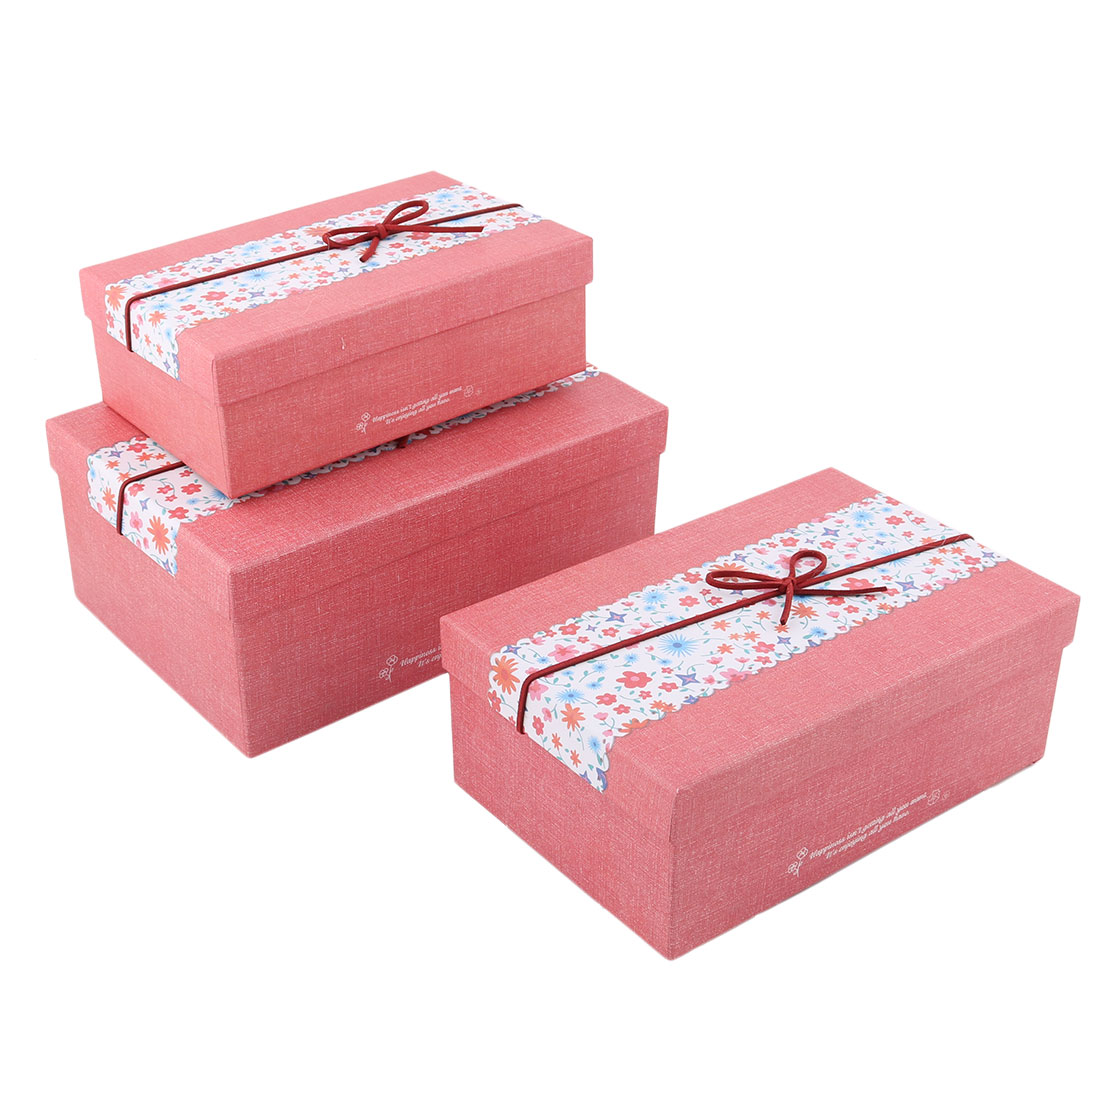 Birthday Christmas Cardboard Floral Pattern Gift Present Candy Case Box 3 in 1